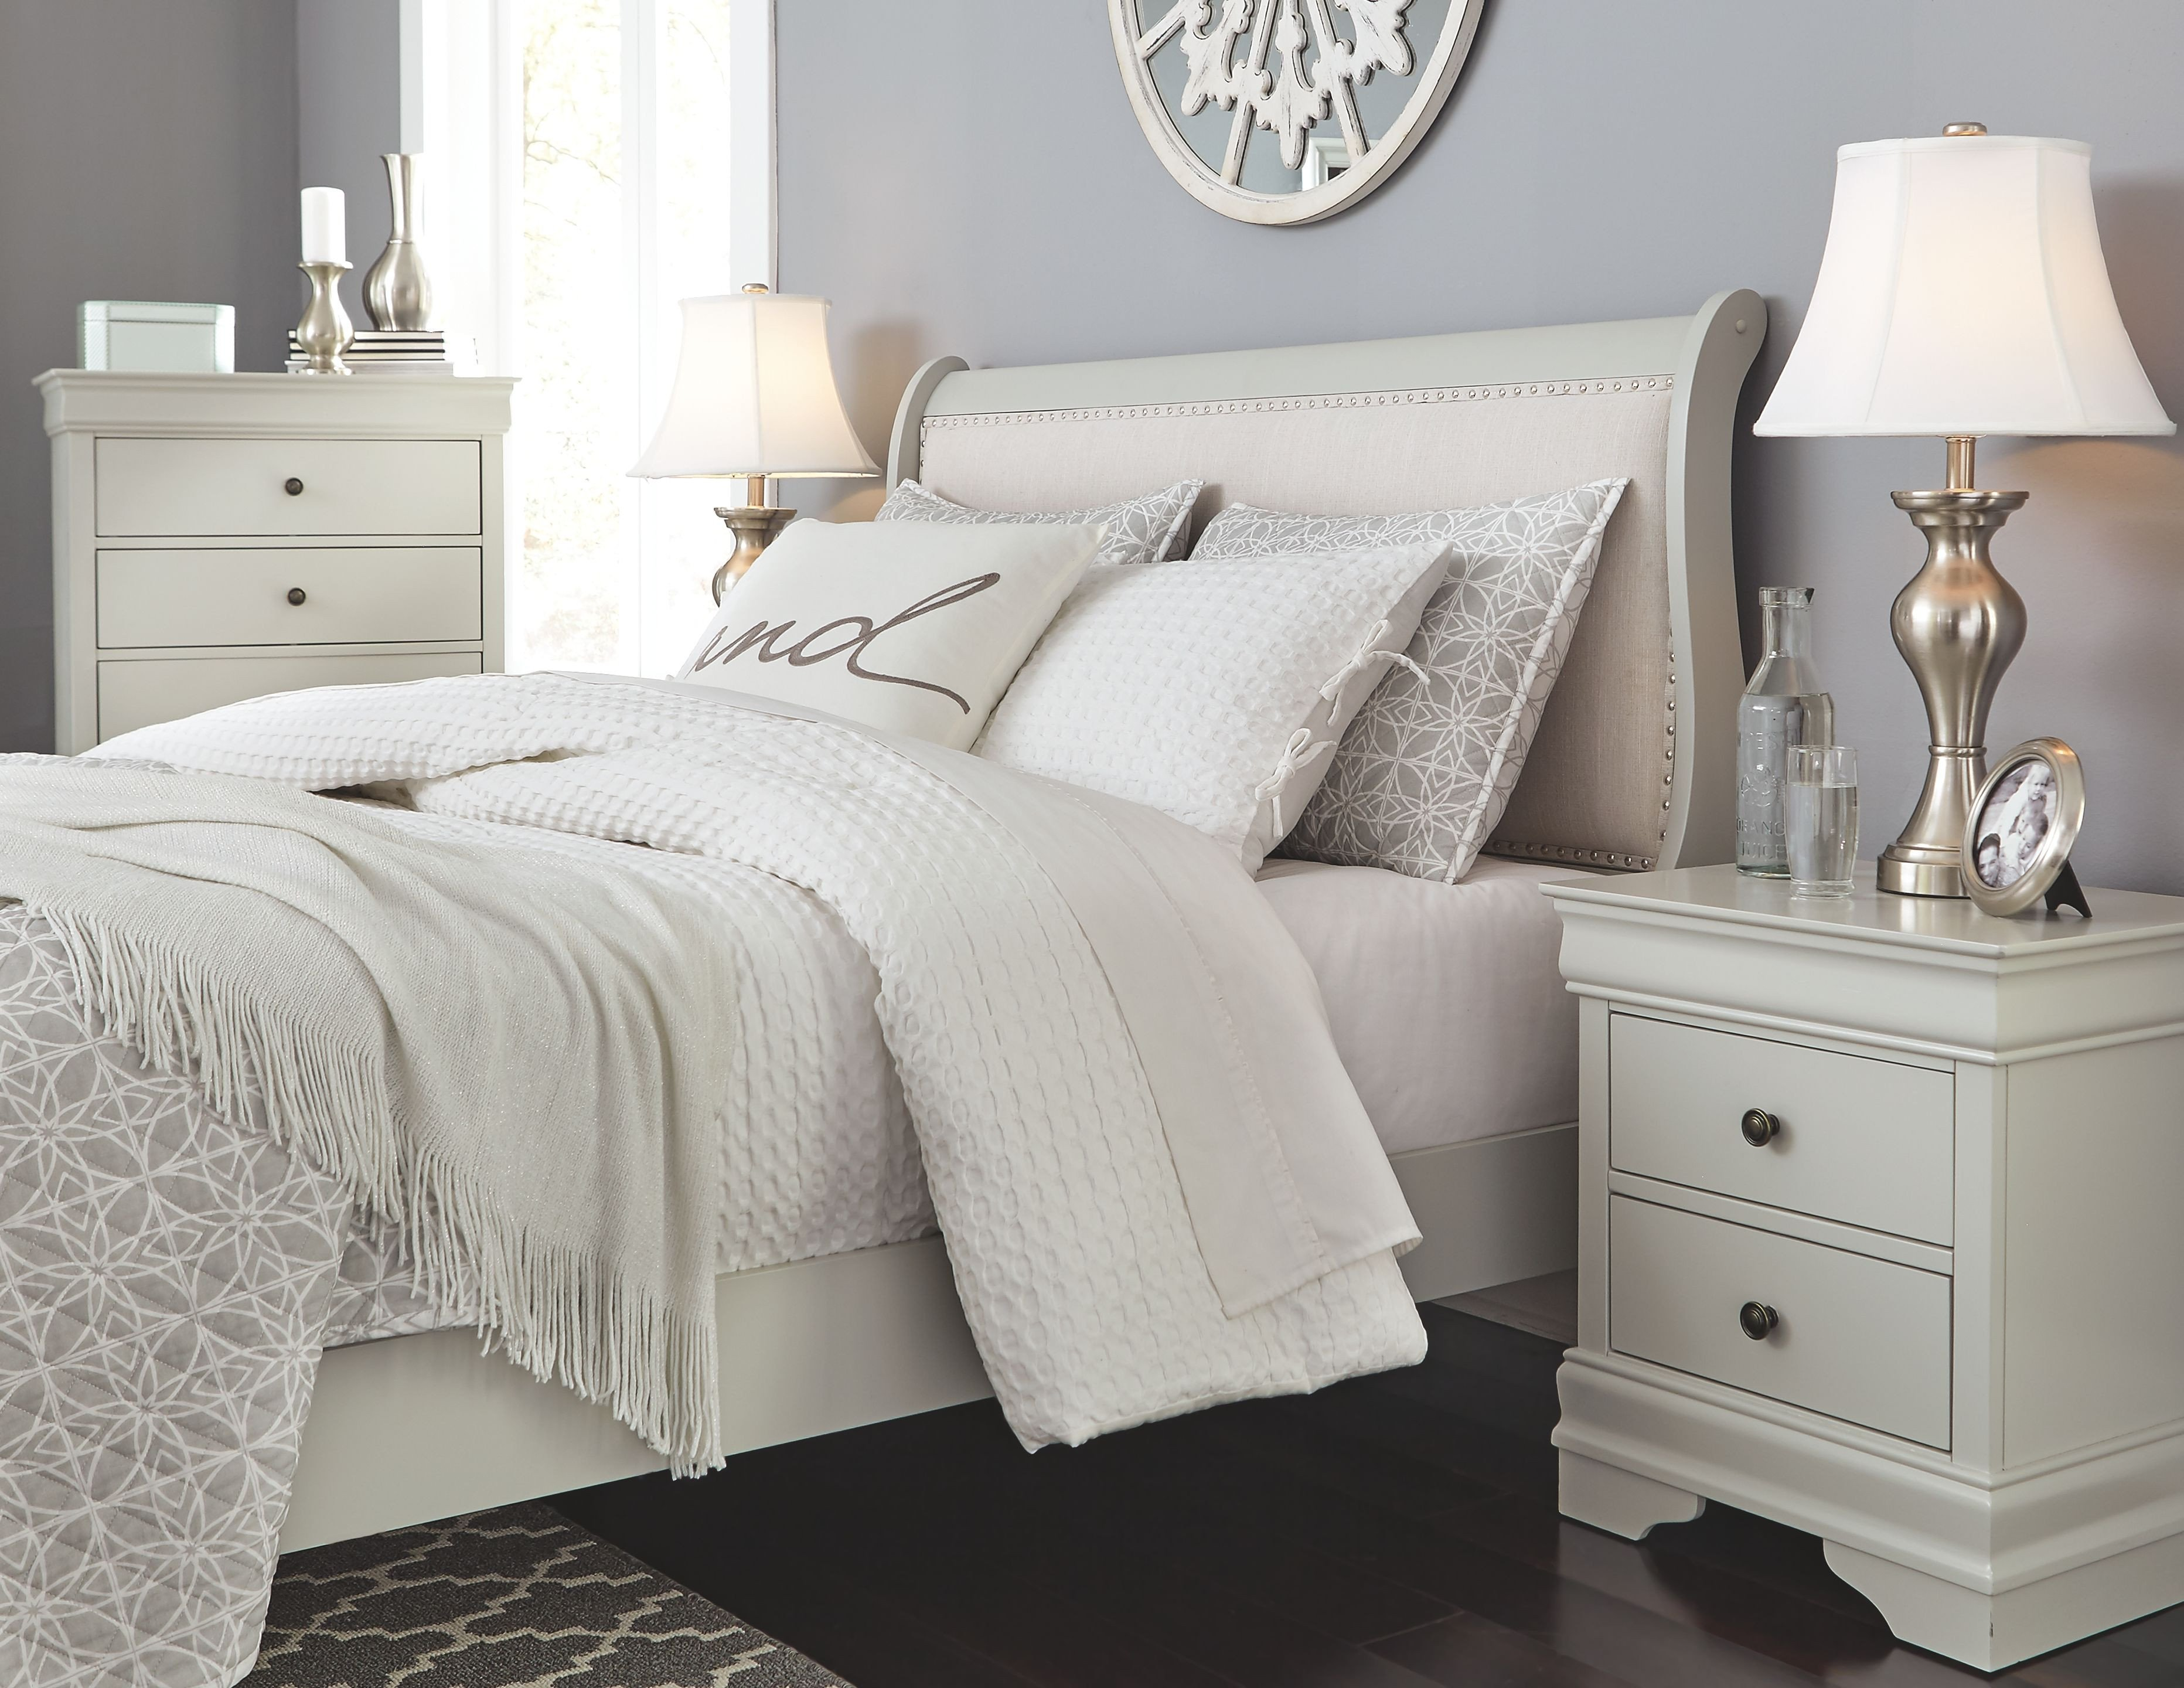 White and Gray Bedroom Beautiful Jorstad Full Bed with 2 Nightstands Gray